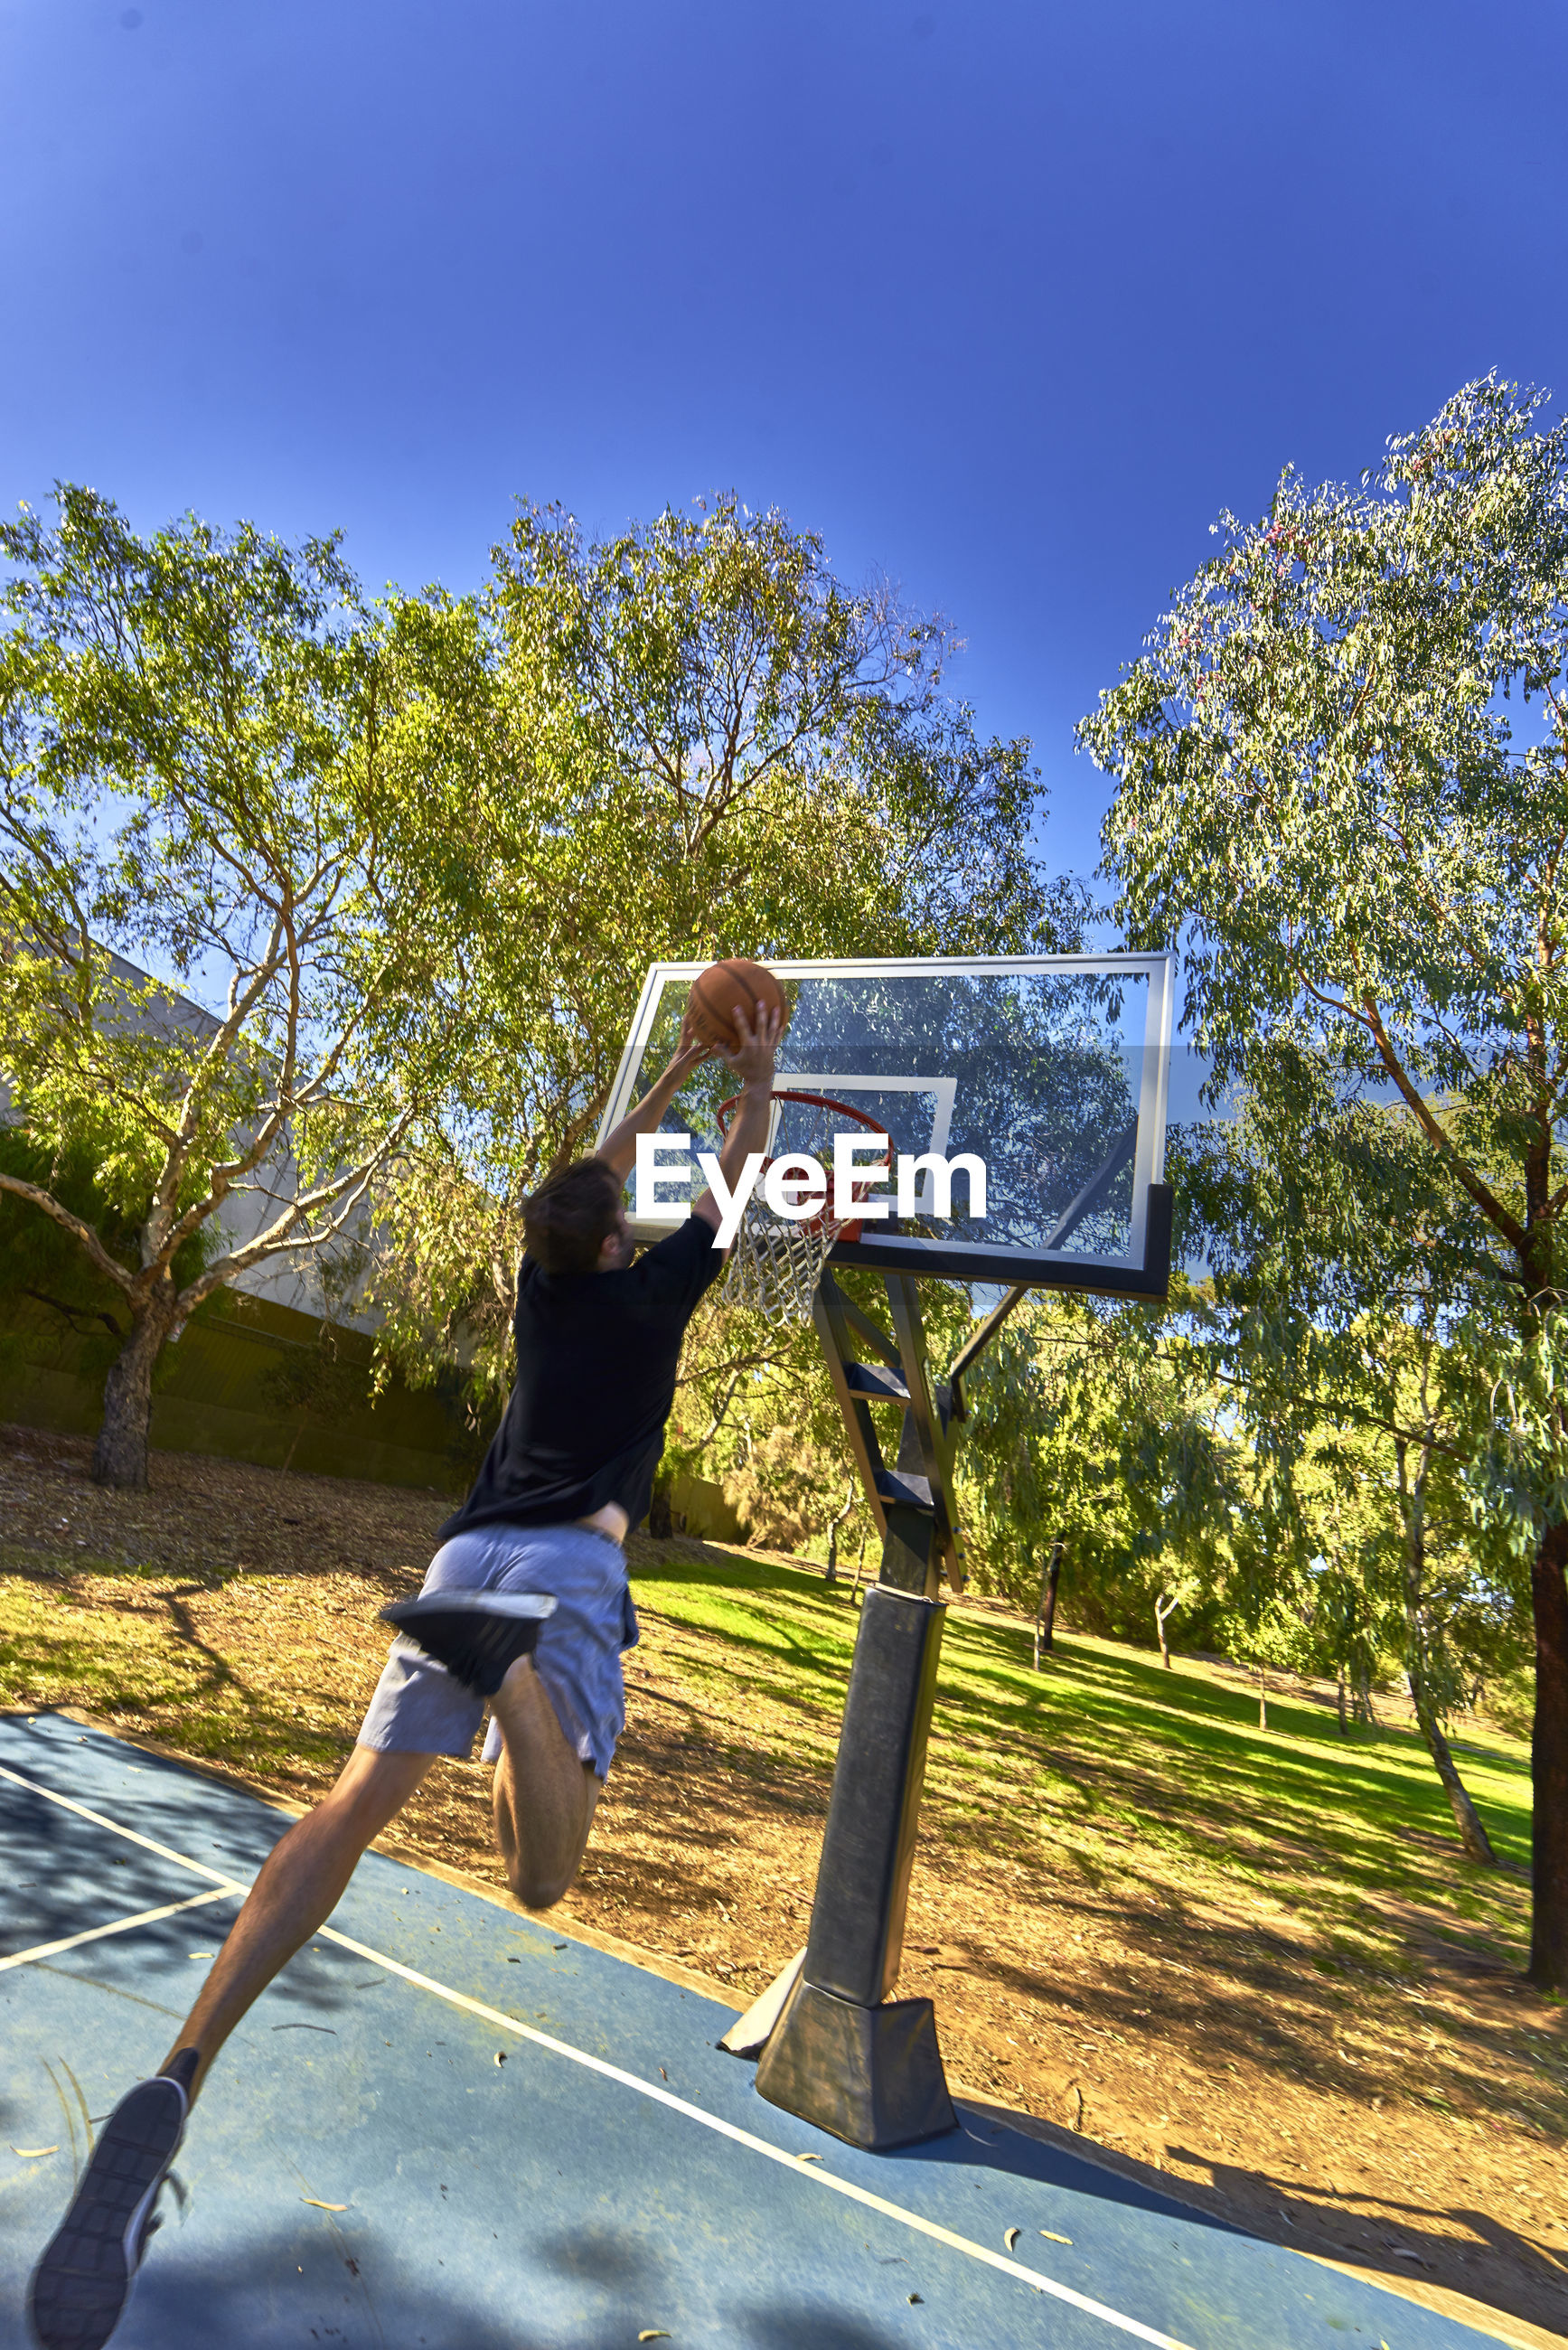 Rear view of man putting ball in basketball hoop against clear sky